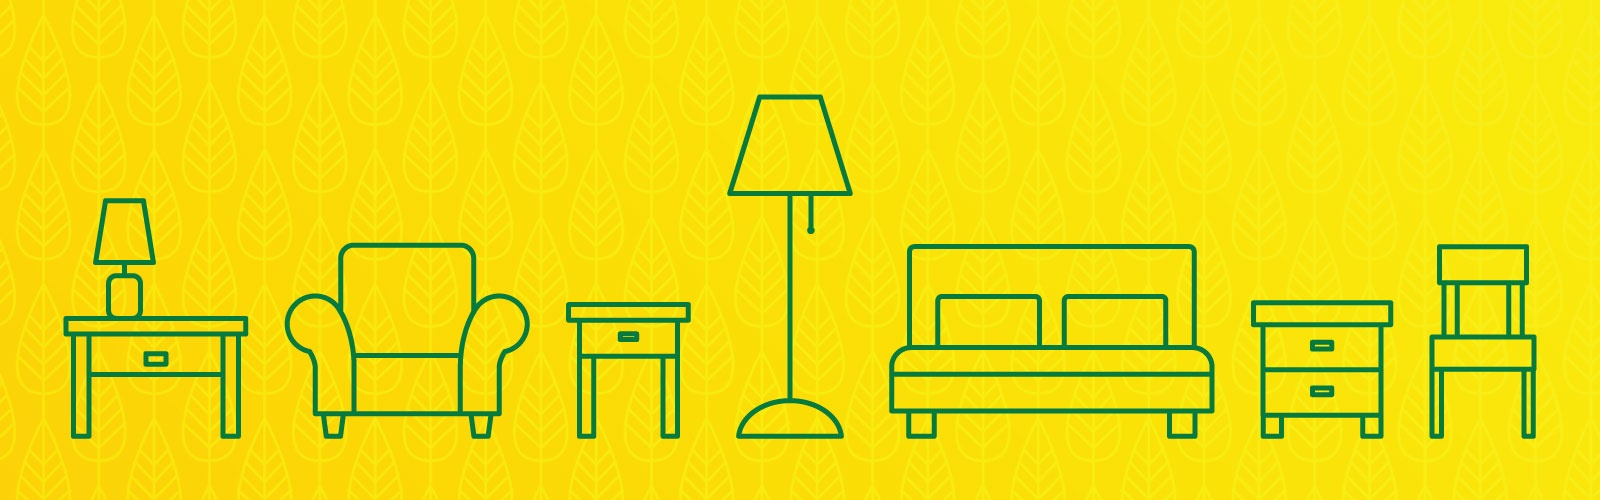 Green lineart of furniture against a yellow patterned background